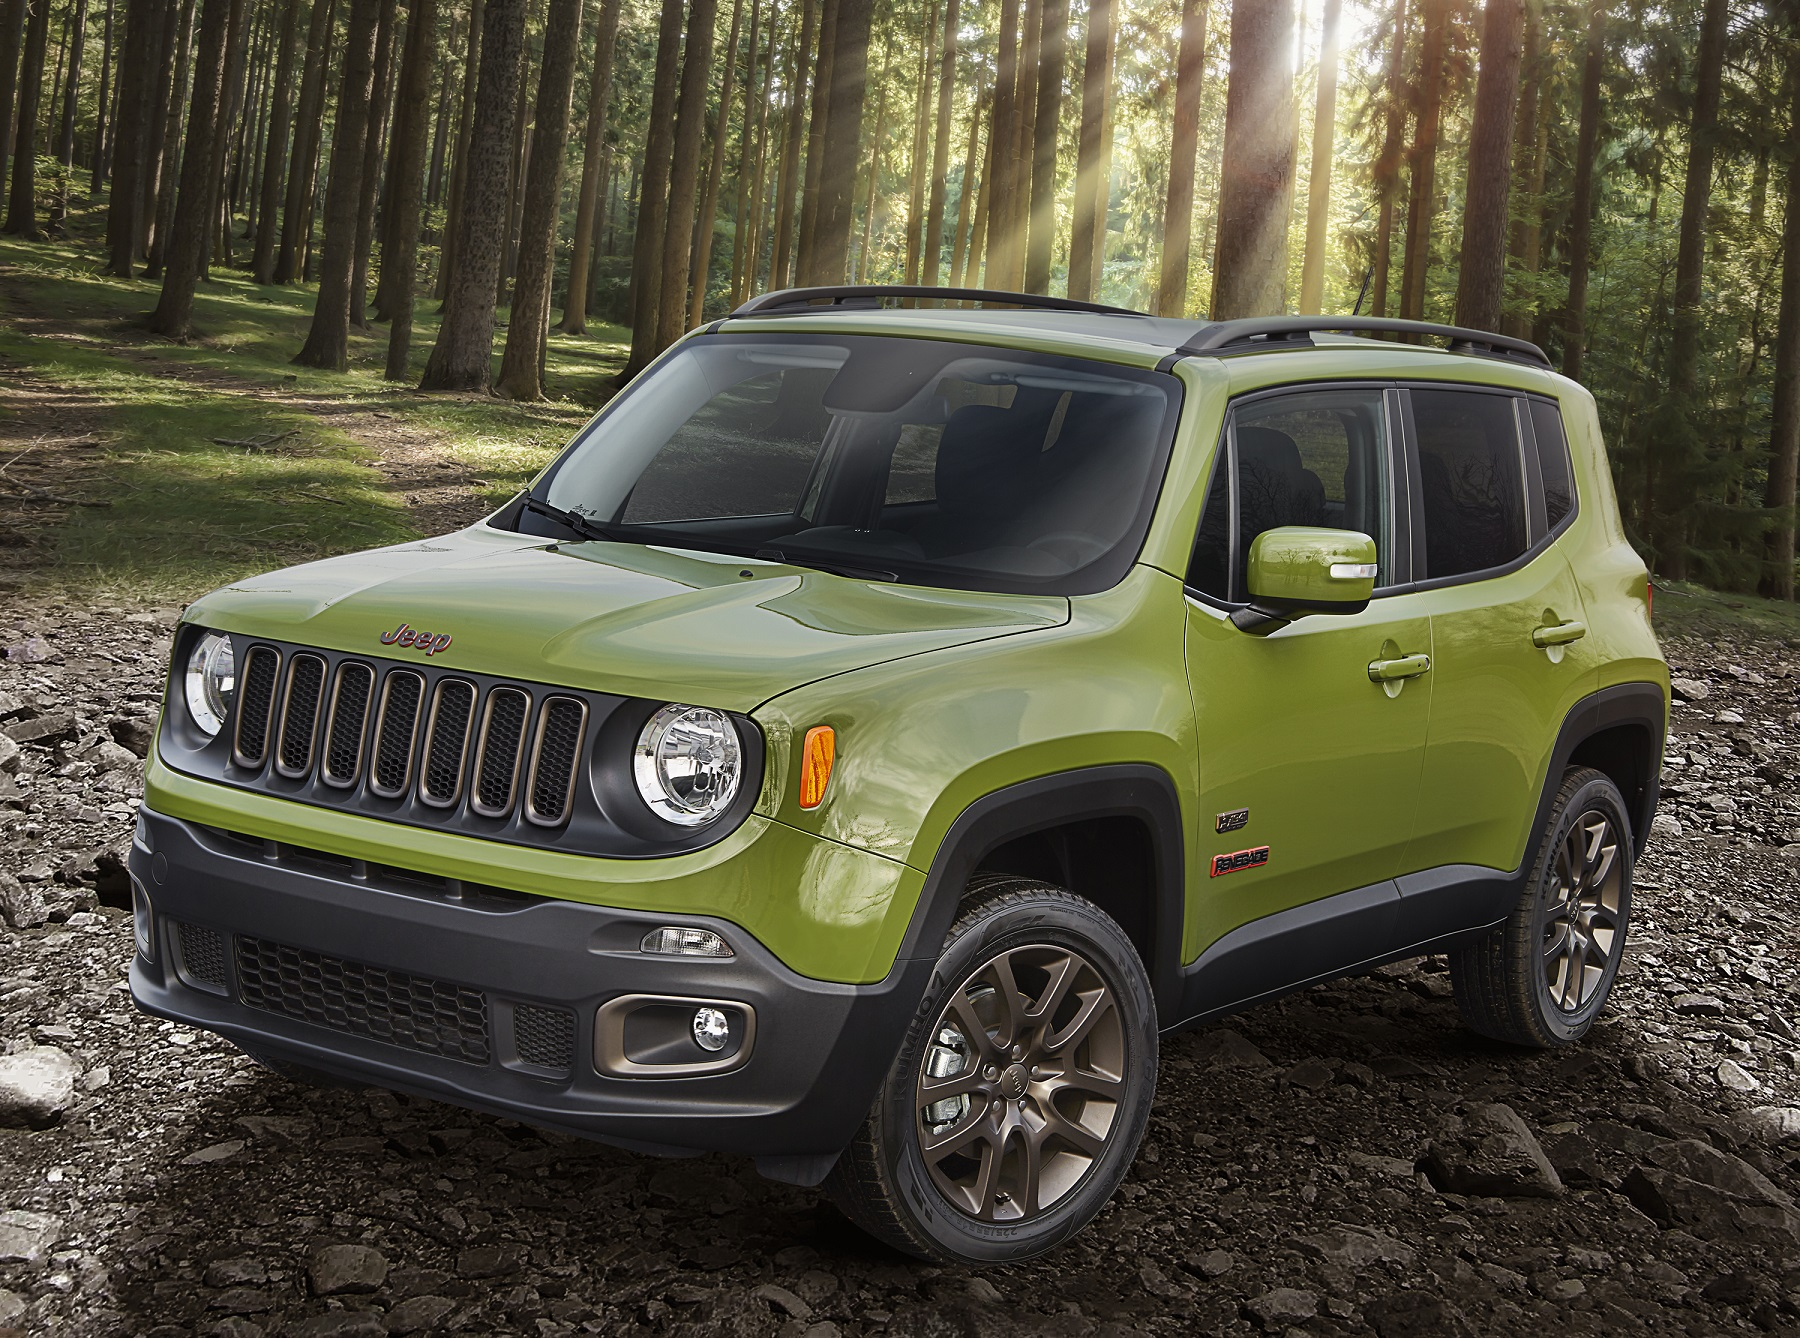 2016 Renegade: A 'real Jeep'